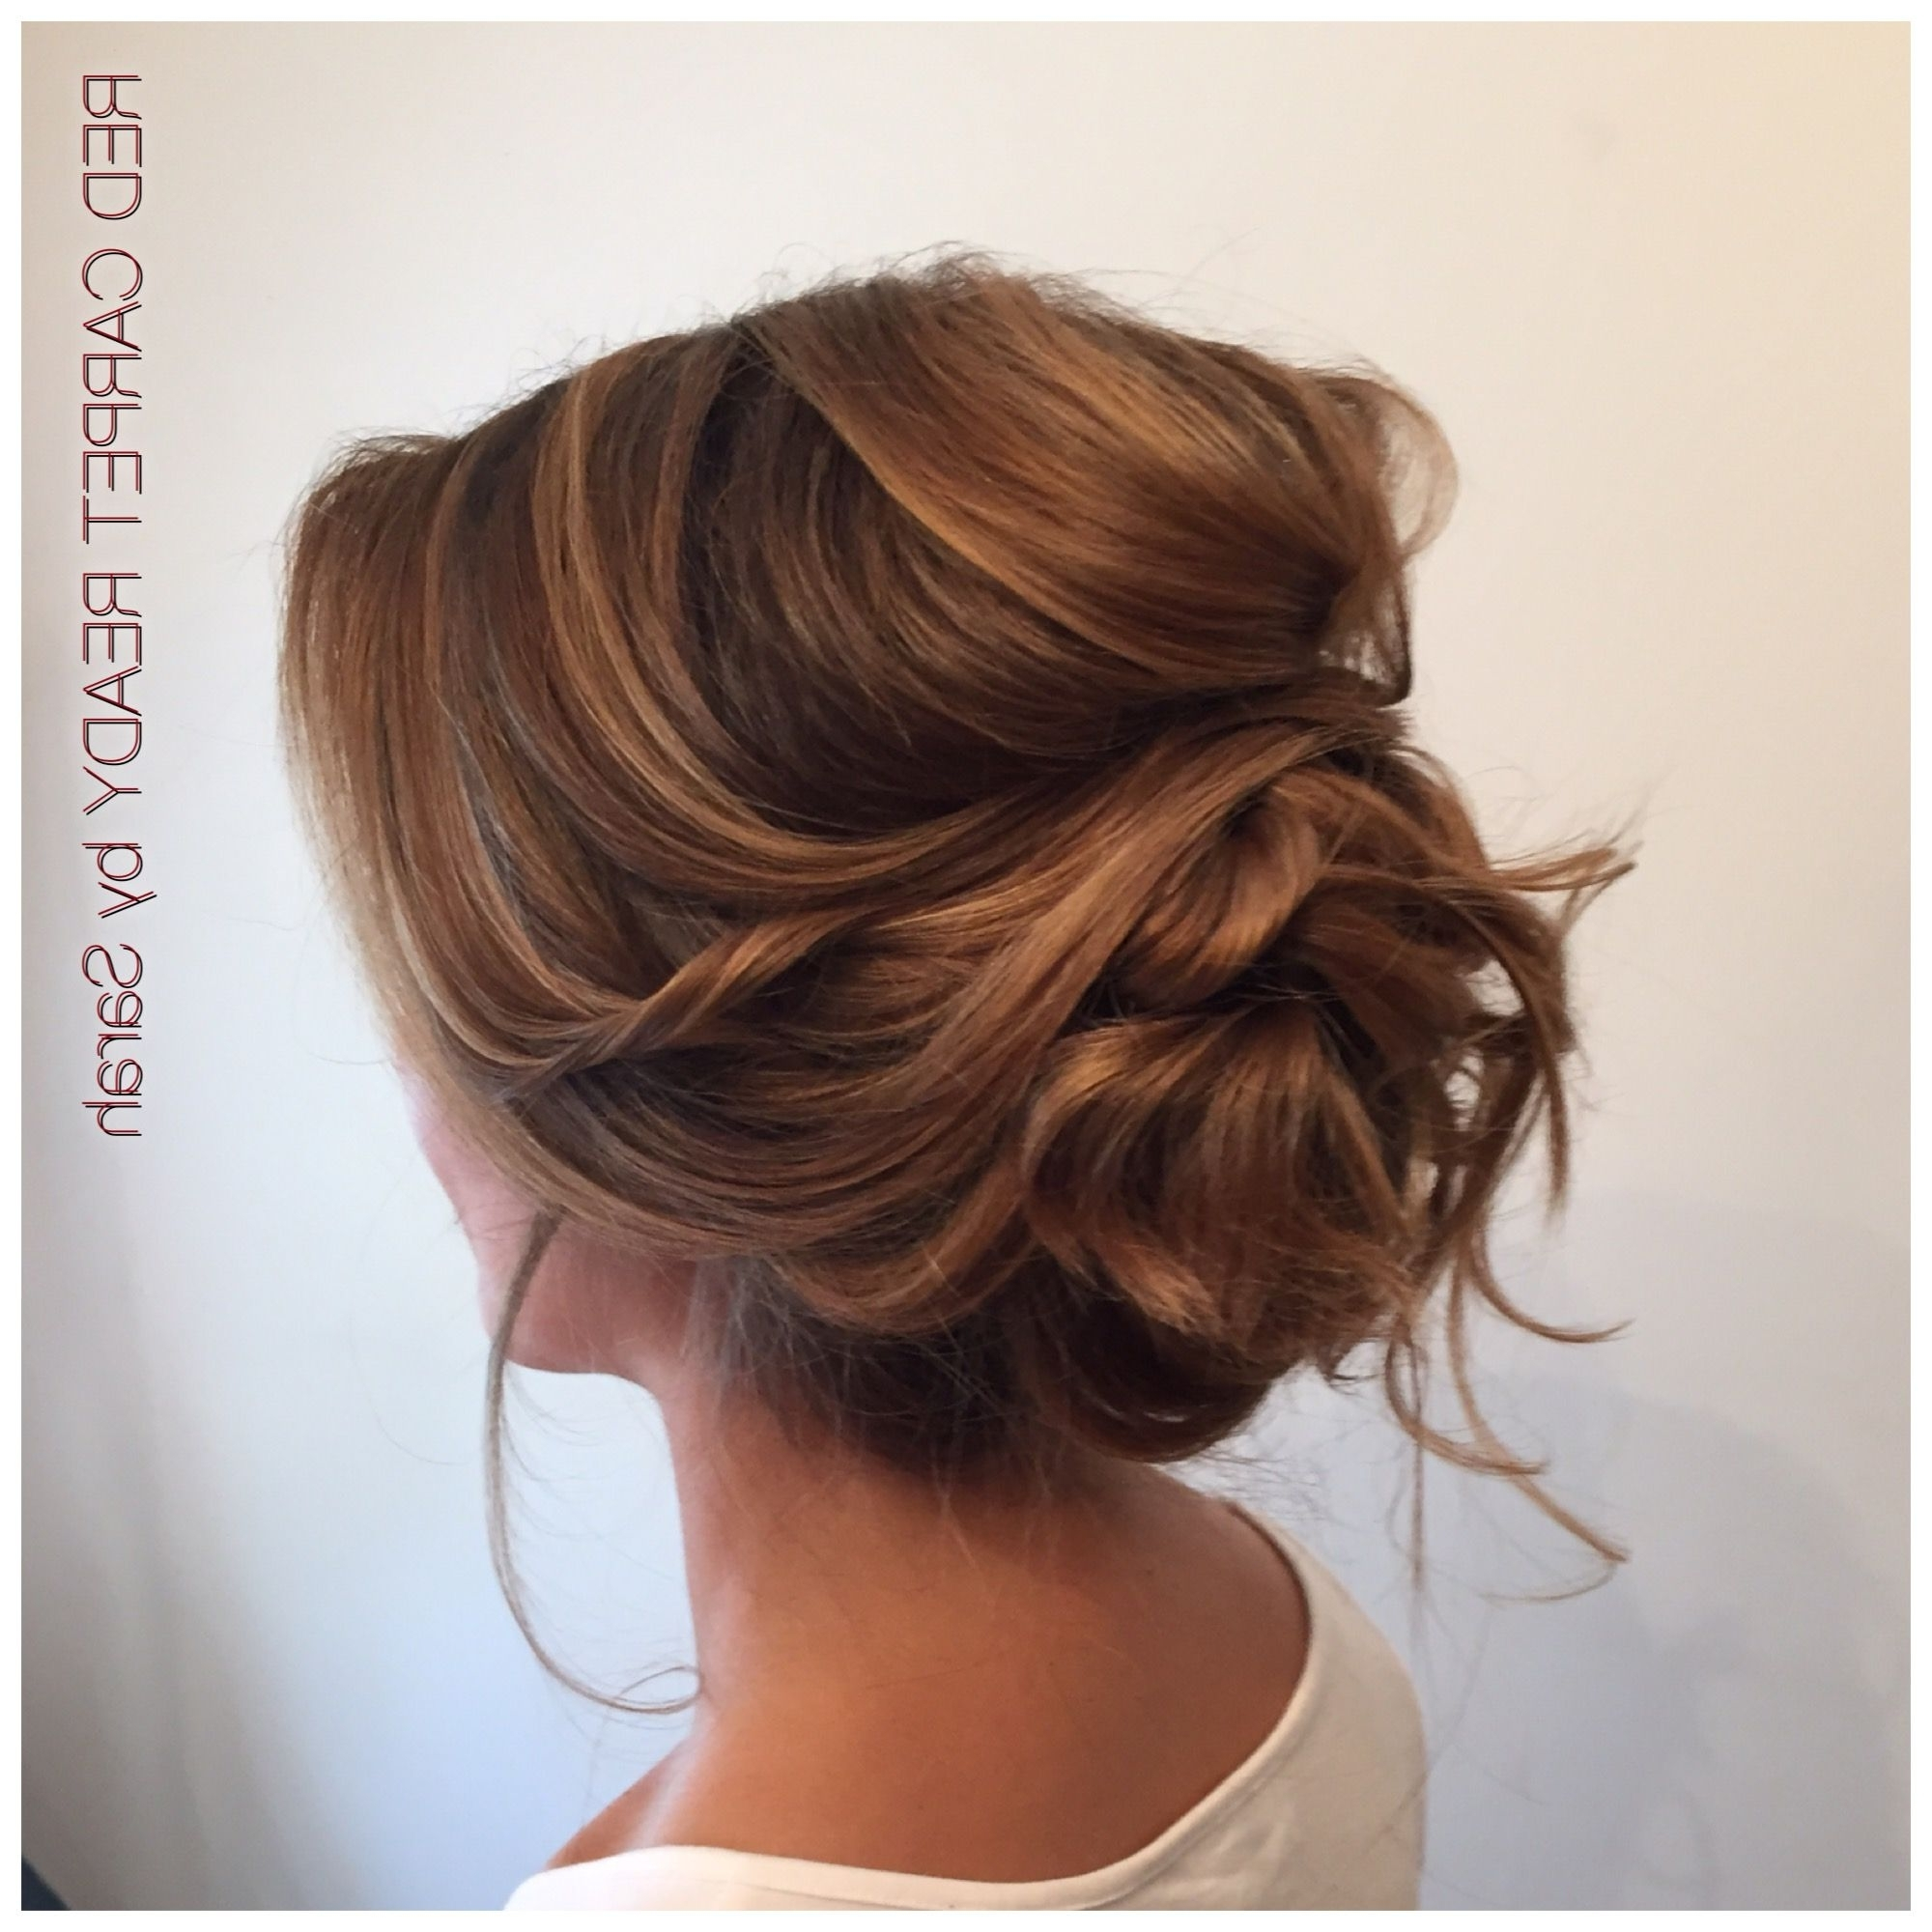 Soft Low Voluminous Updo Hairme | Peinados Y/o Tocados With Low Bun Updo Wedding Hairstyles (View 13 of 15)